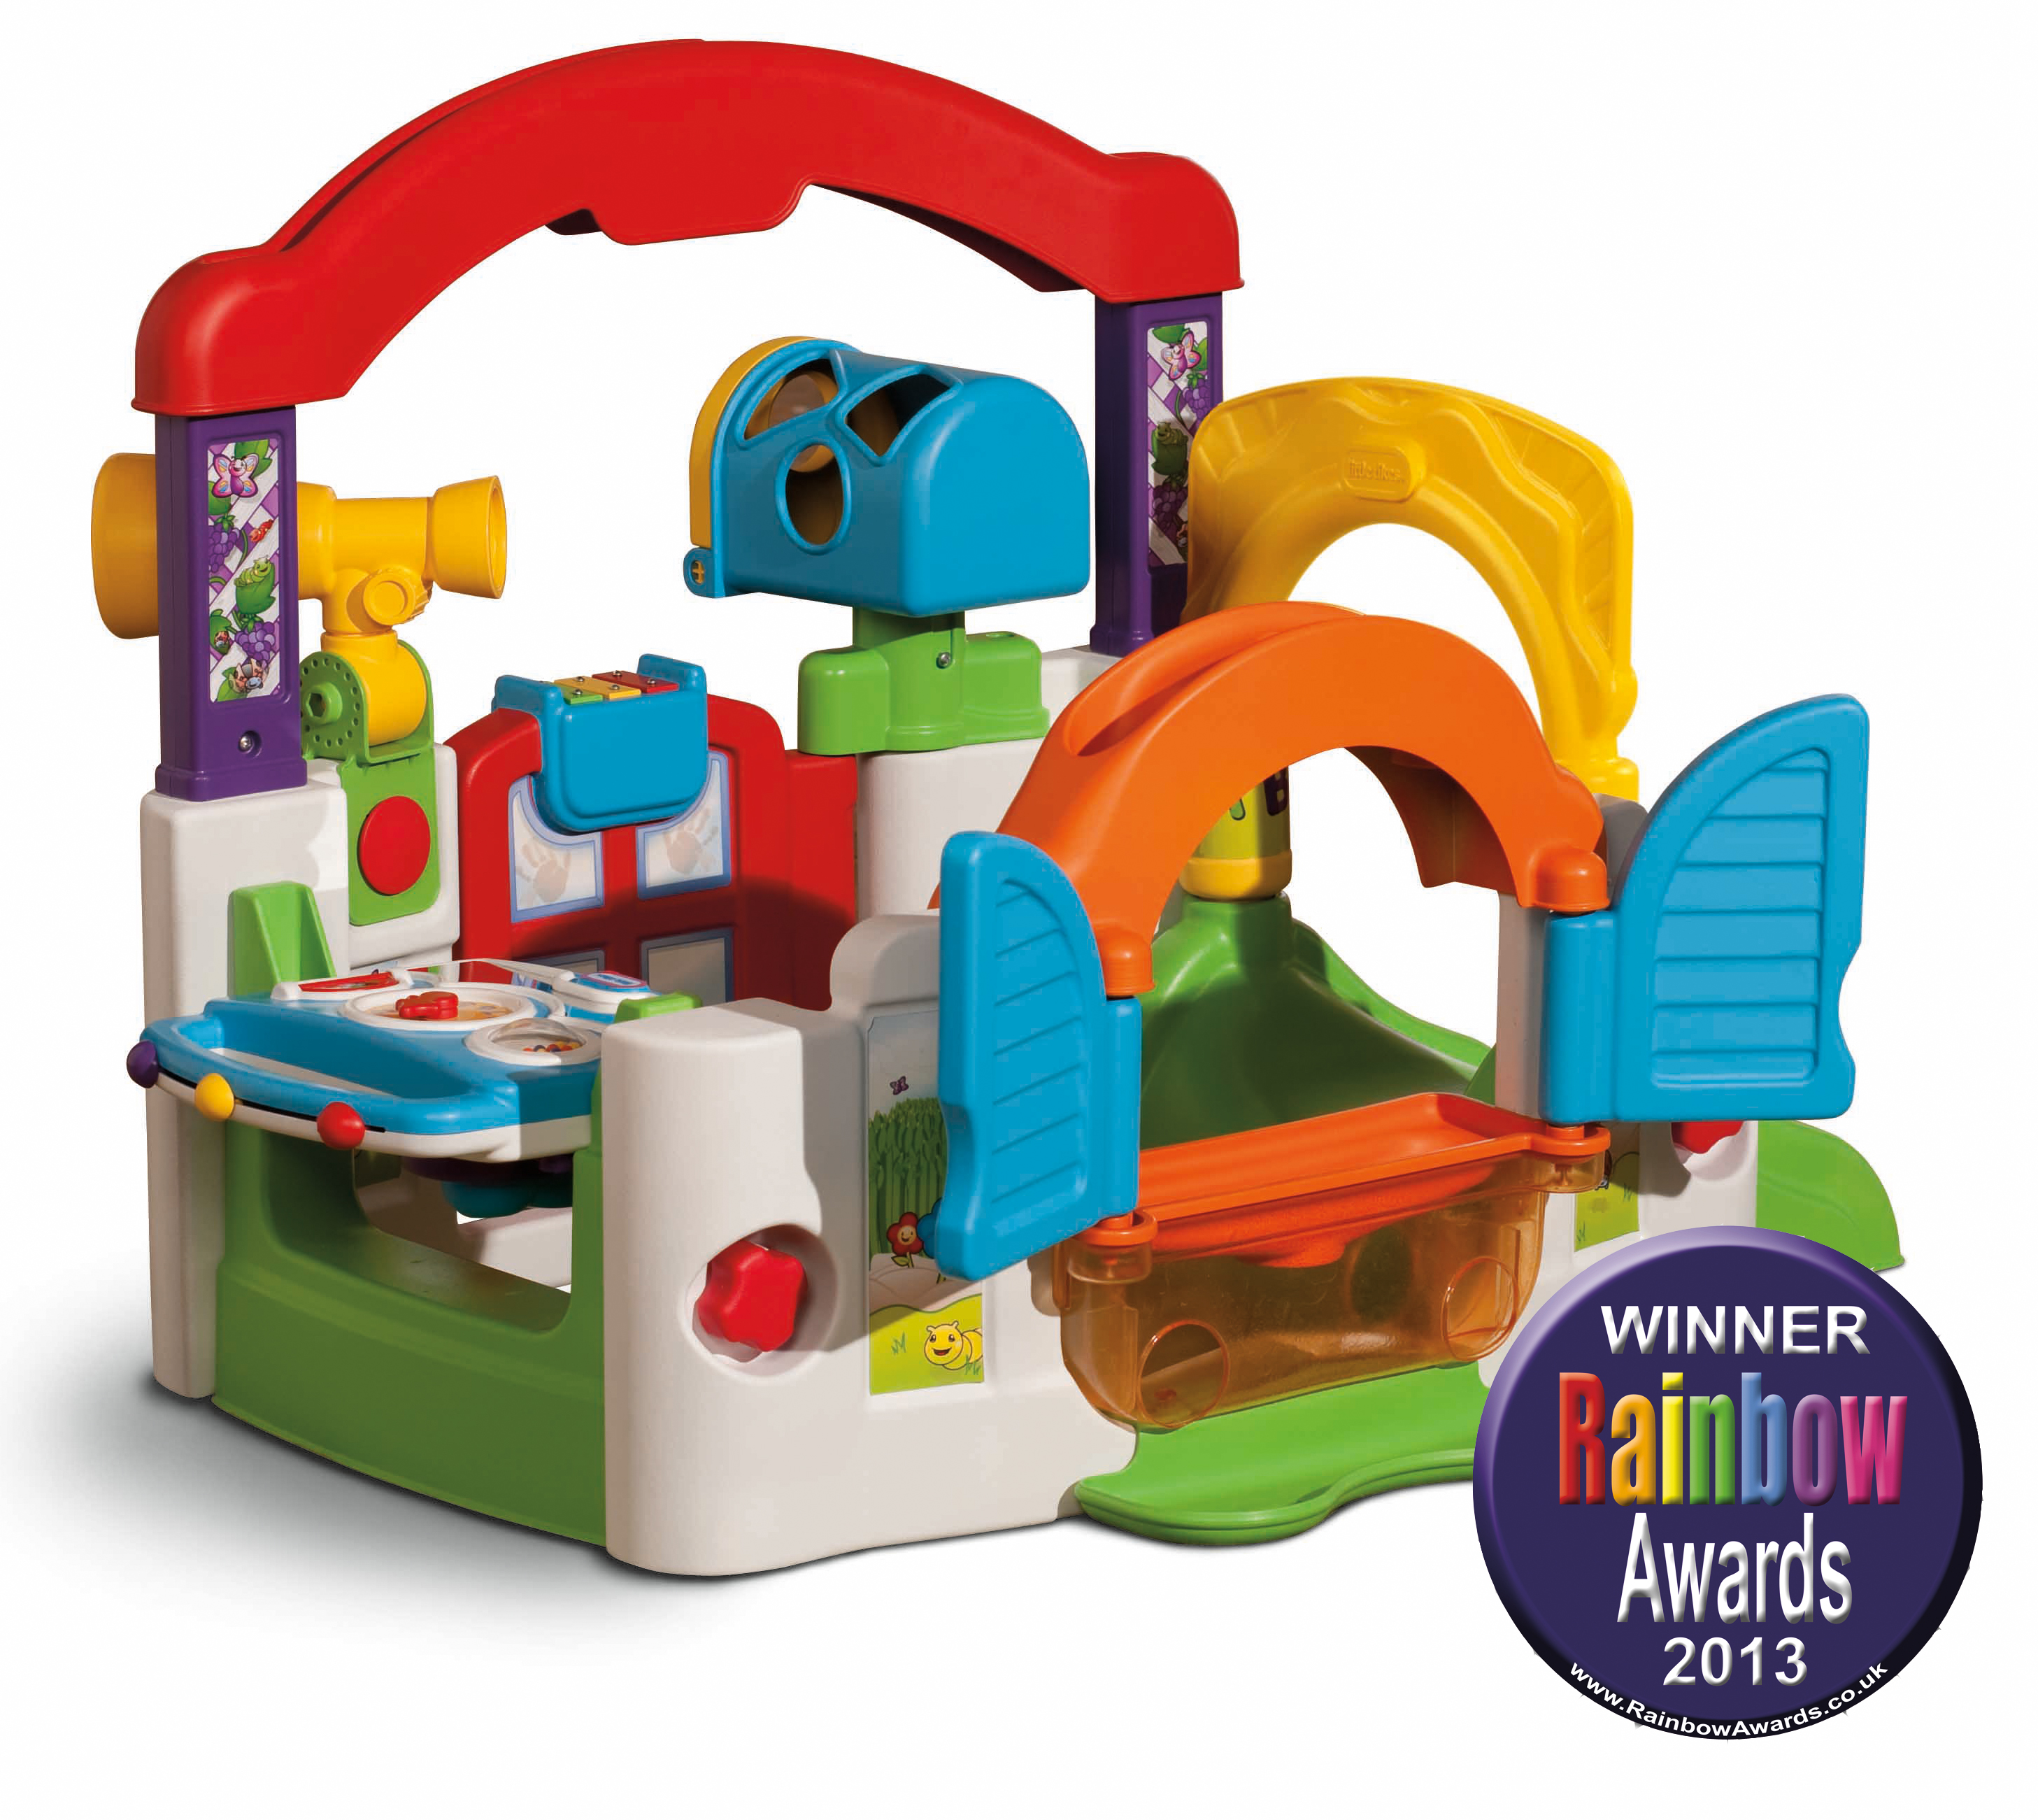 Toys For Awards : The rainbow toy awards round up